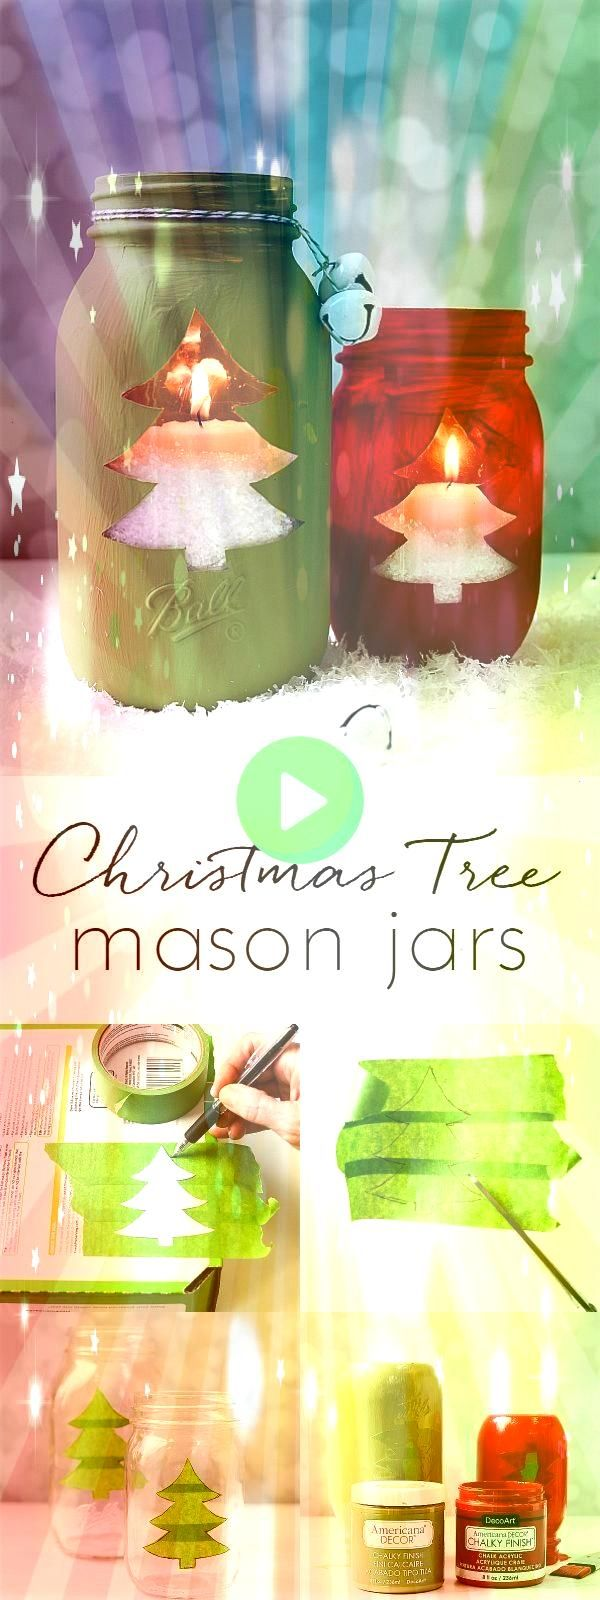 Jar Christmas Tree Vocal Jar Christmas TreeVocal Jar Christmas Tree Let it snow  window screen hand painting with light  This DIY Christmas craft makes for a beautiful ho...